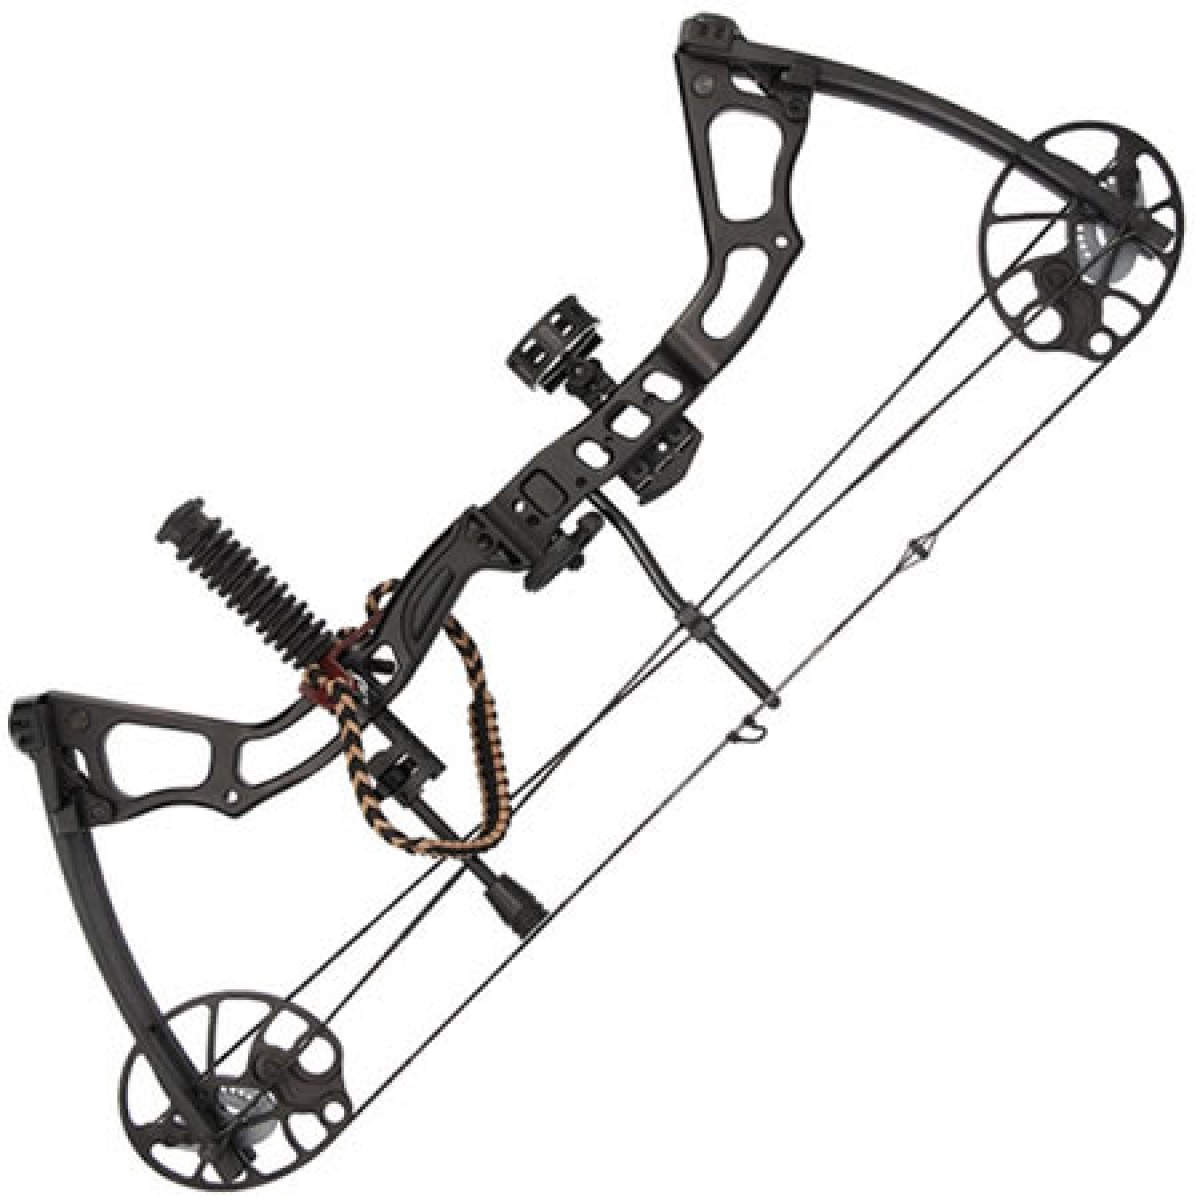 1200x1200 Barringtons Swords Chikara 15 70lb Compound Bow